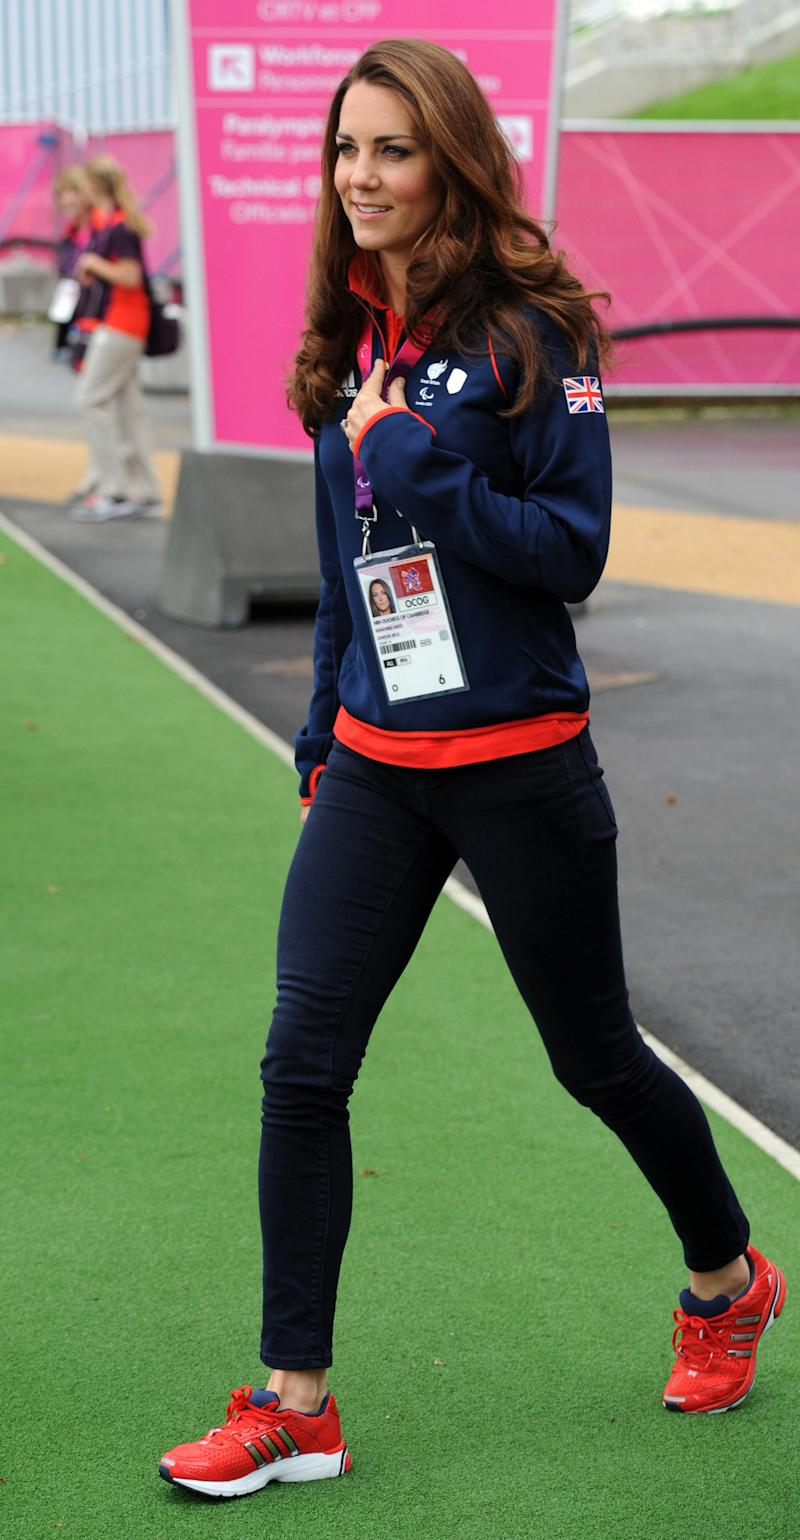 The Duchess of Cambridge during the London 2012 Paralympic Games on Aug. 30, 2012. (STEFAN ROUSSEAU via Getty Images)